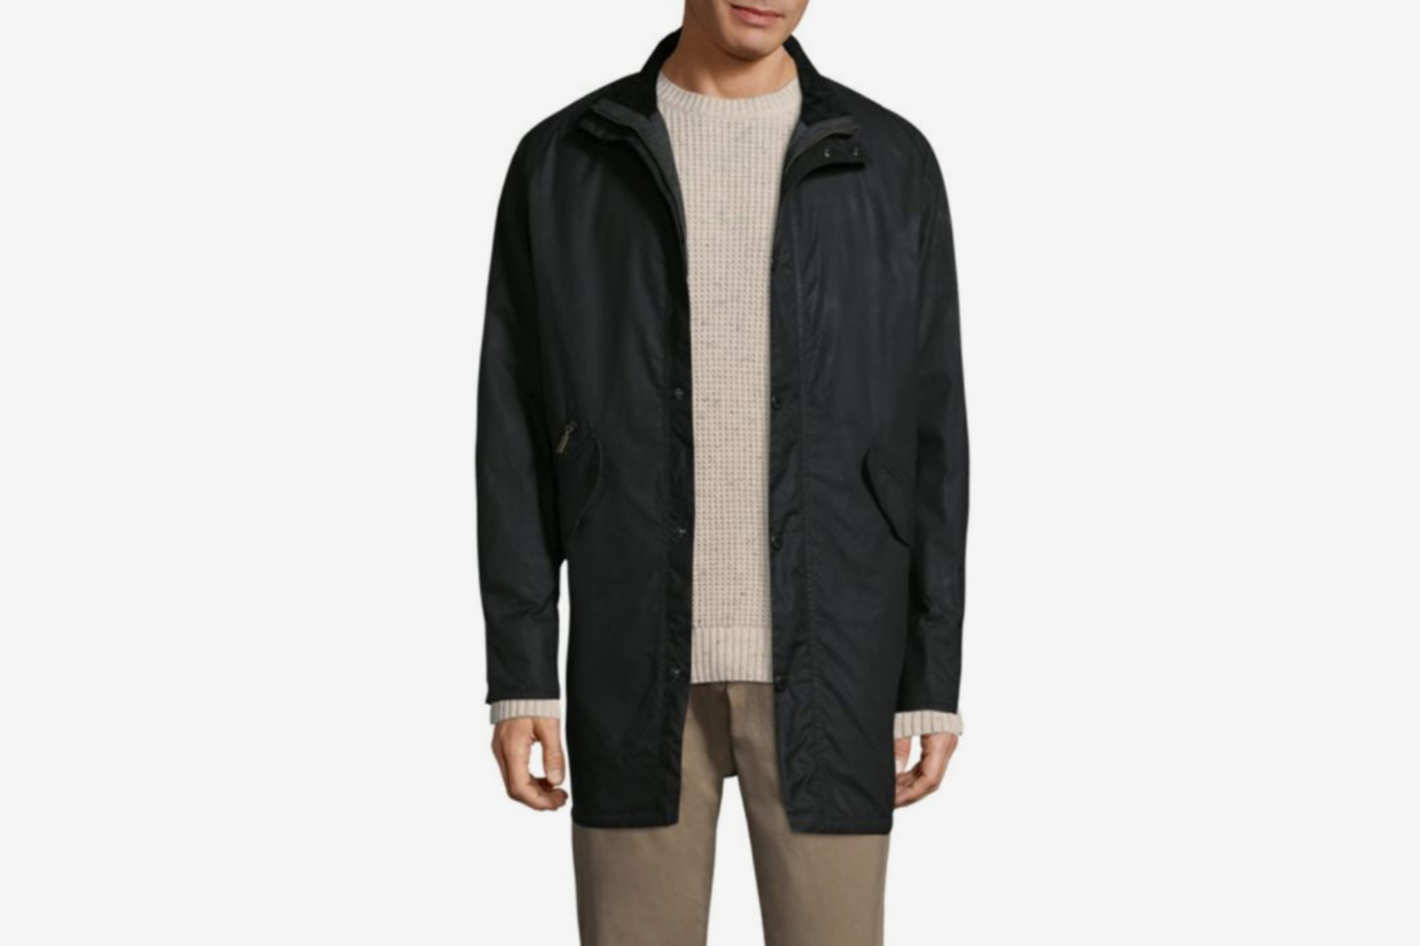 Barbour High-Neck Snap Cotton Jacket